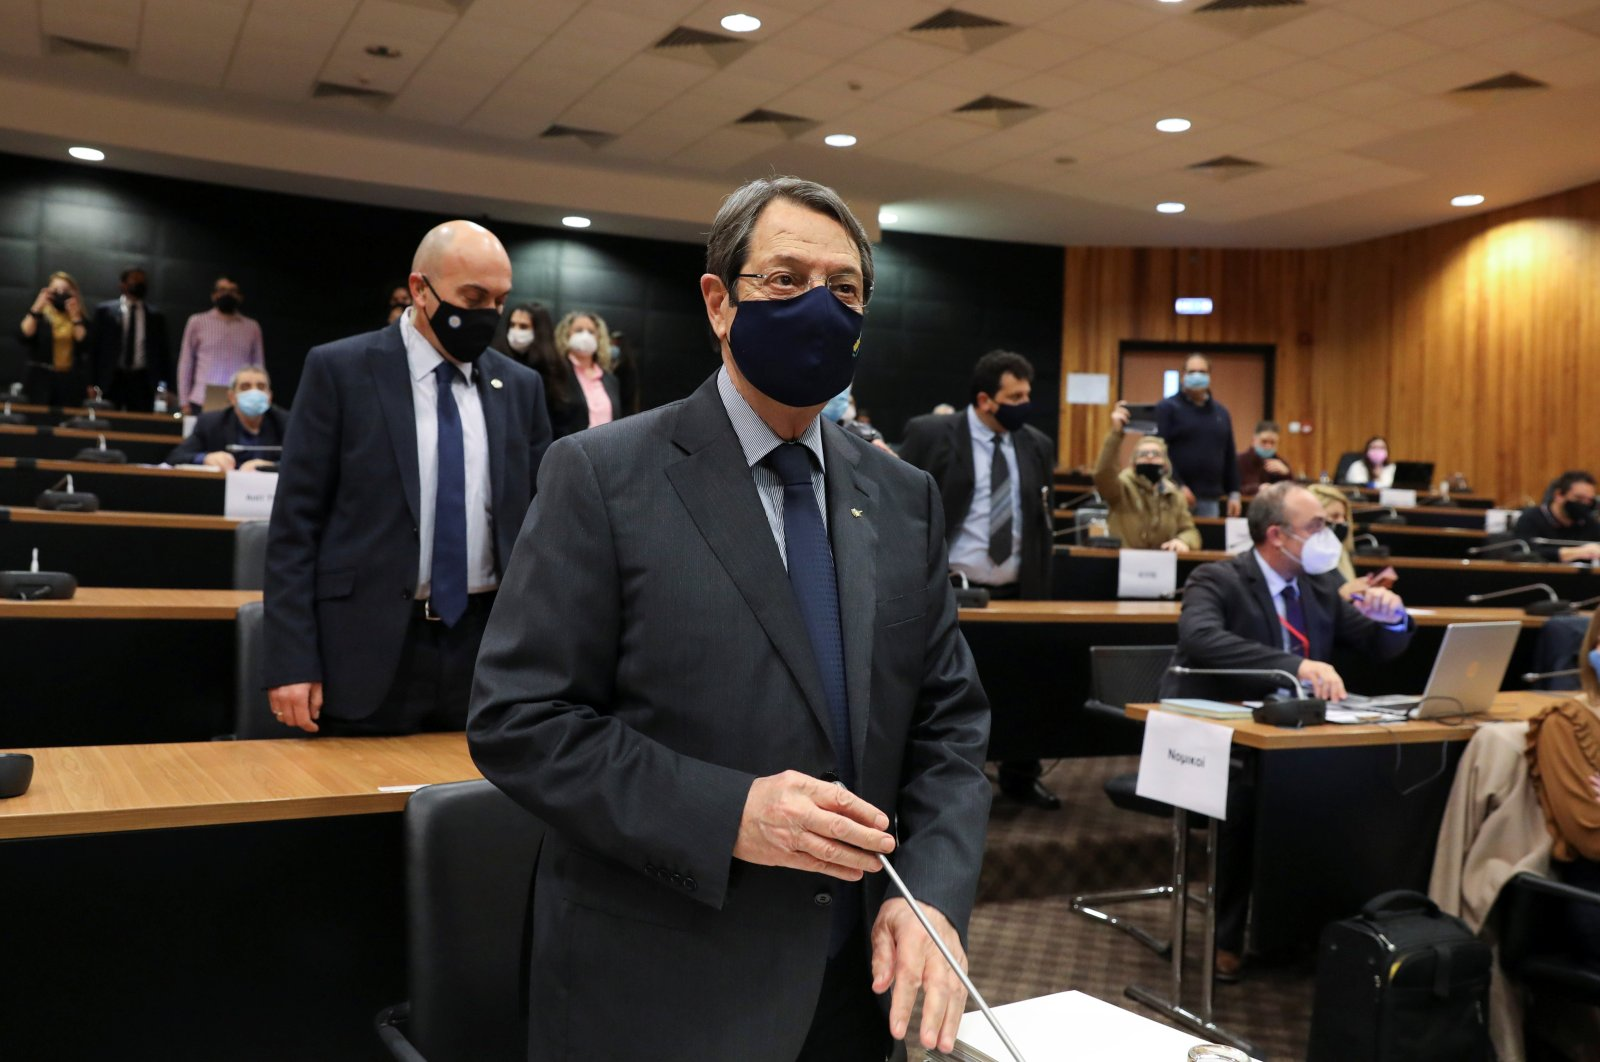 """Greek Cypriot administration's leader Nicos Anastasiades prepares to testify during a deposition to the investigating committee on the """"golden passport"""" scheme in Nicosia, Greek Cyprus, Feb. 12, 2021. (Reuters Photo)"""